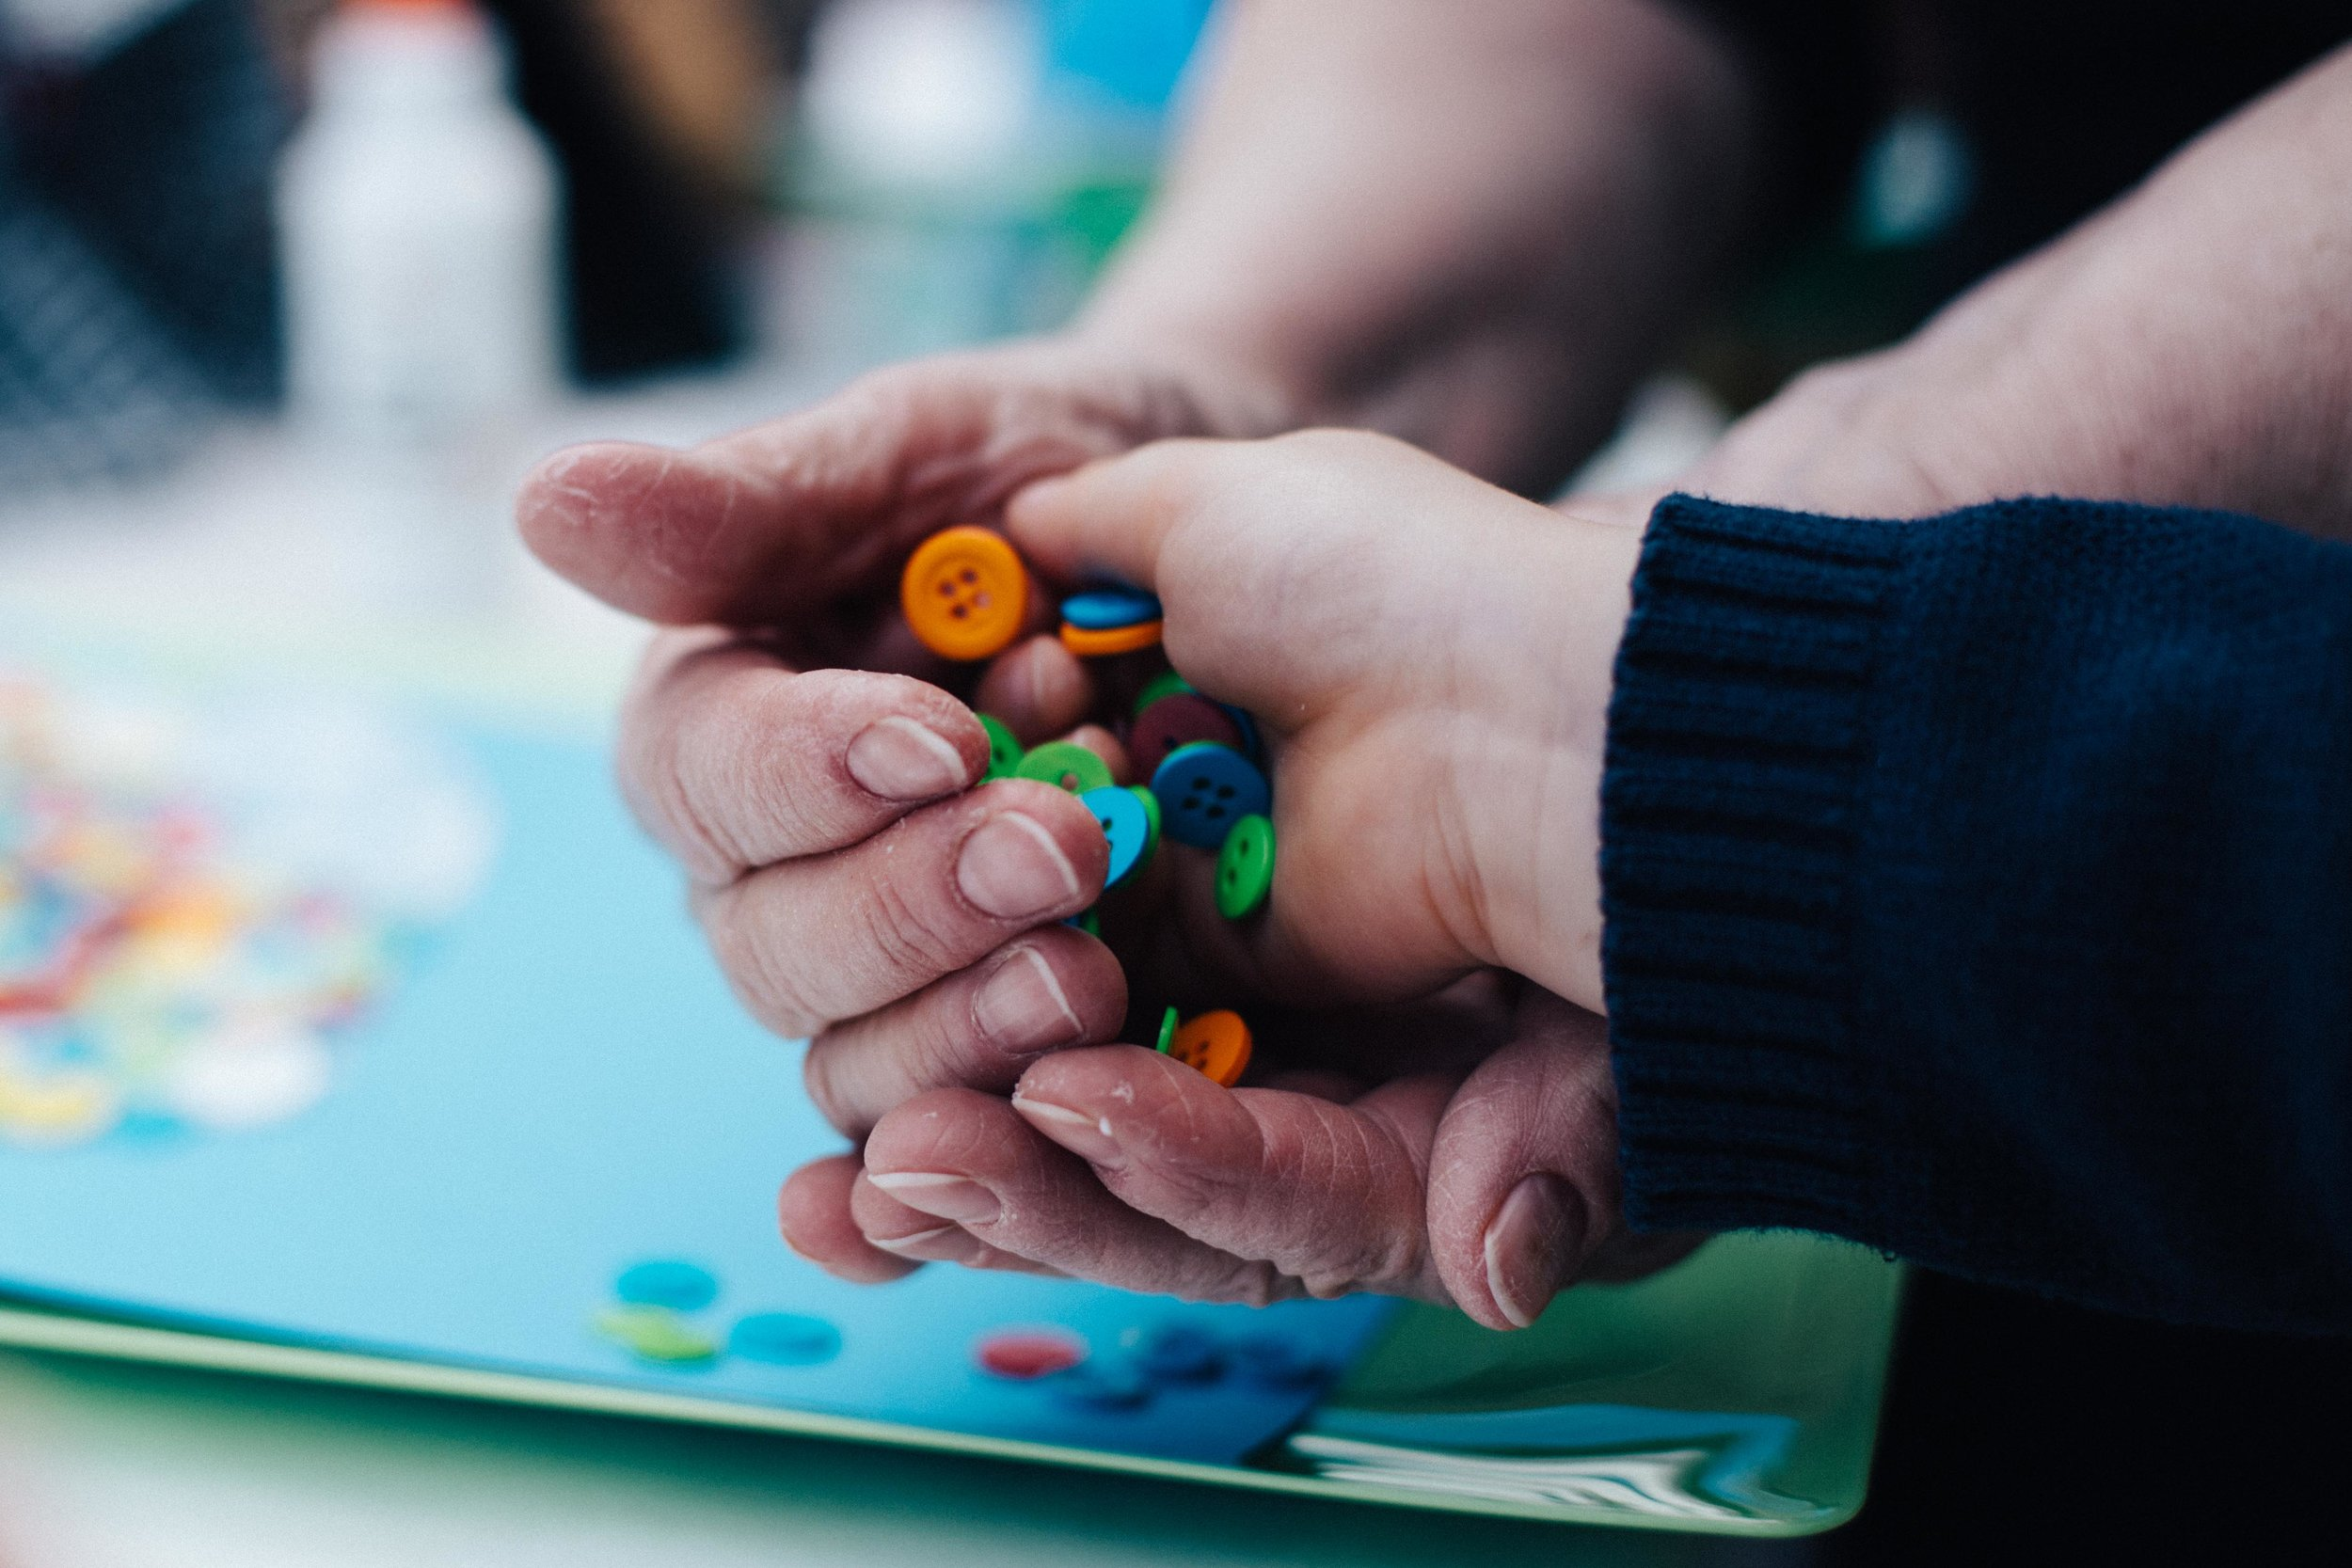 Child and grandmother hands with buttons